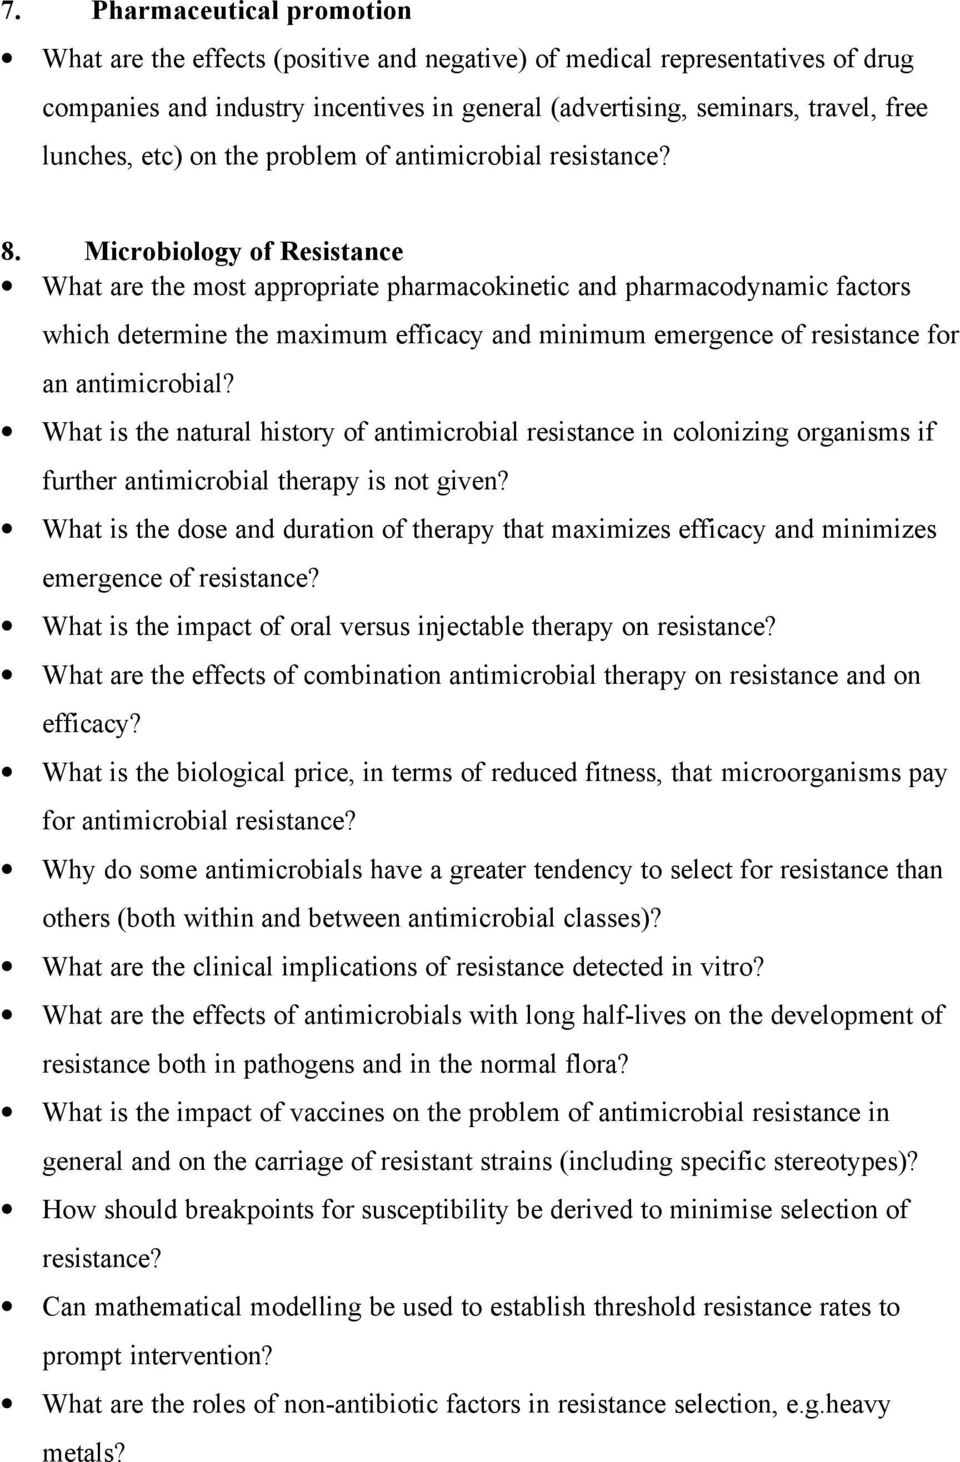 Microbiology of Resistance What are the most appropriate pharmacokinetic and pharmacodynamic factors which determine the maximum efficacy and minimum emergence of resistance for an antimicrobial?